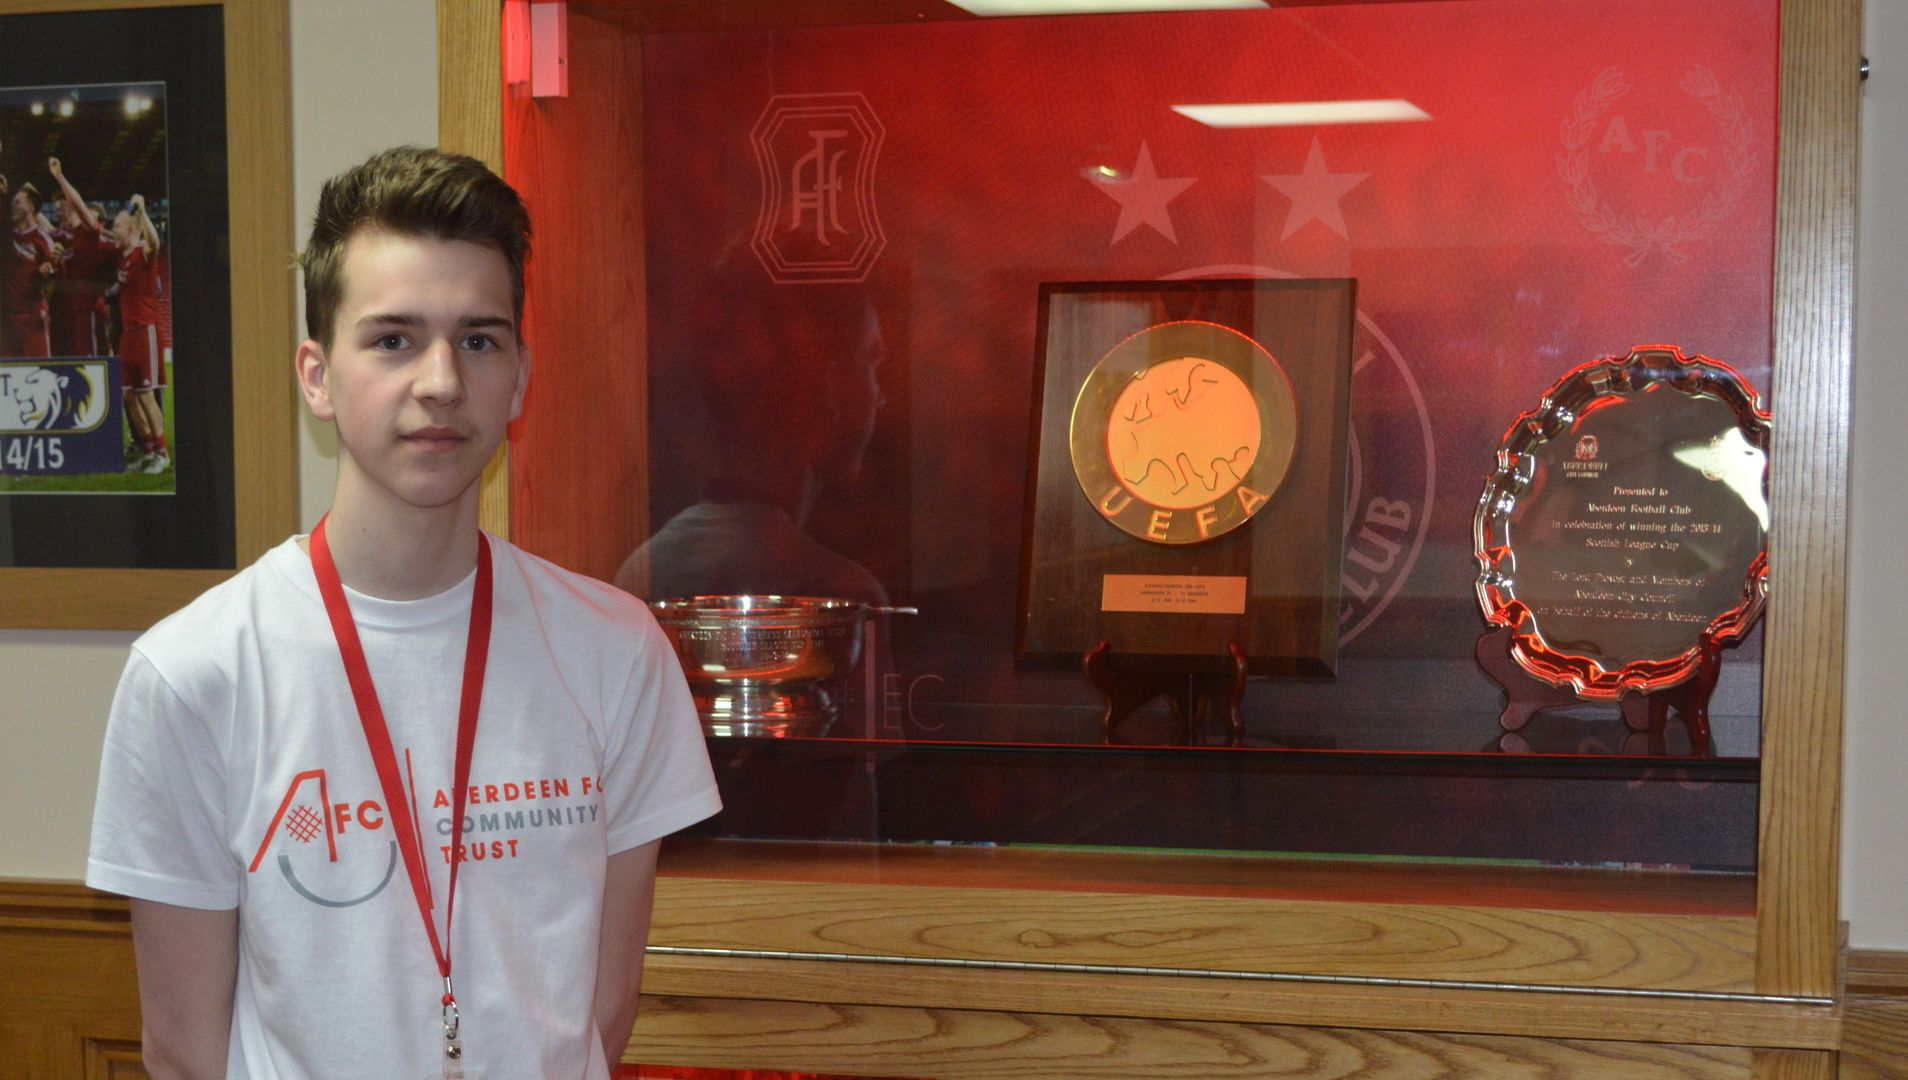 My AFCCT Work Experience by Liam Scott